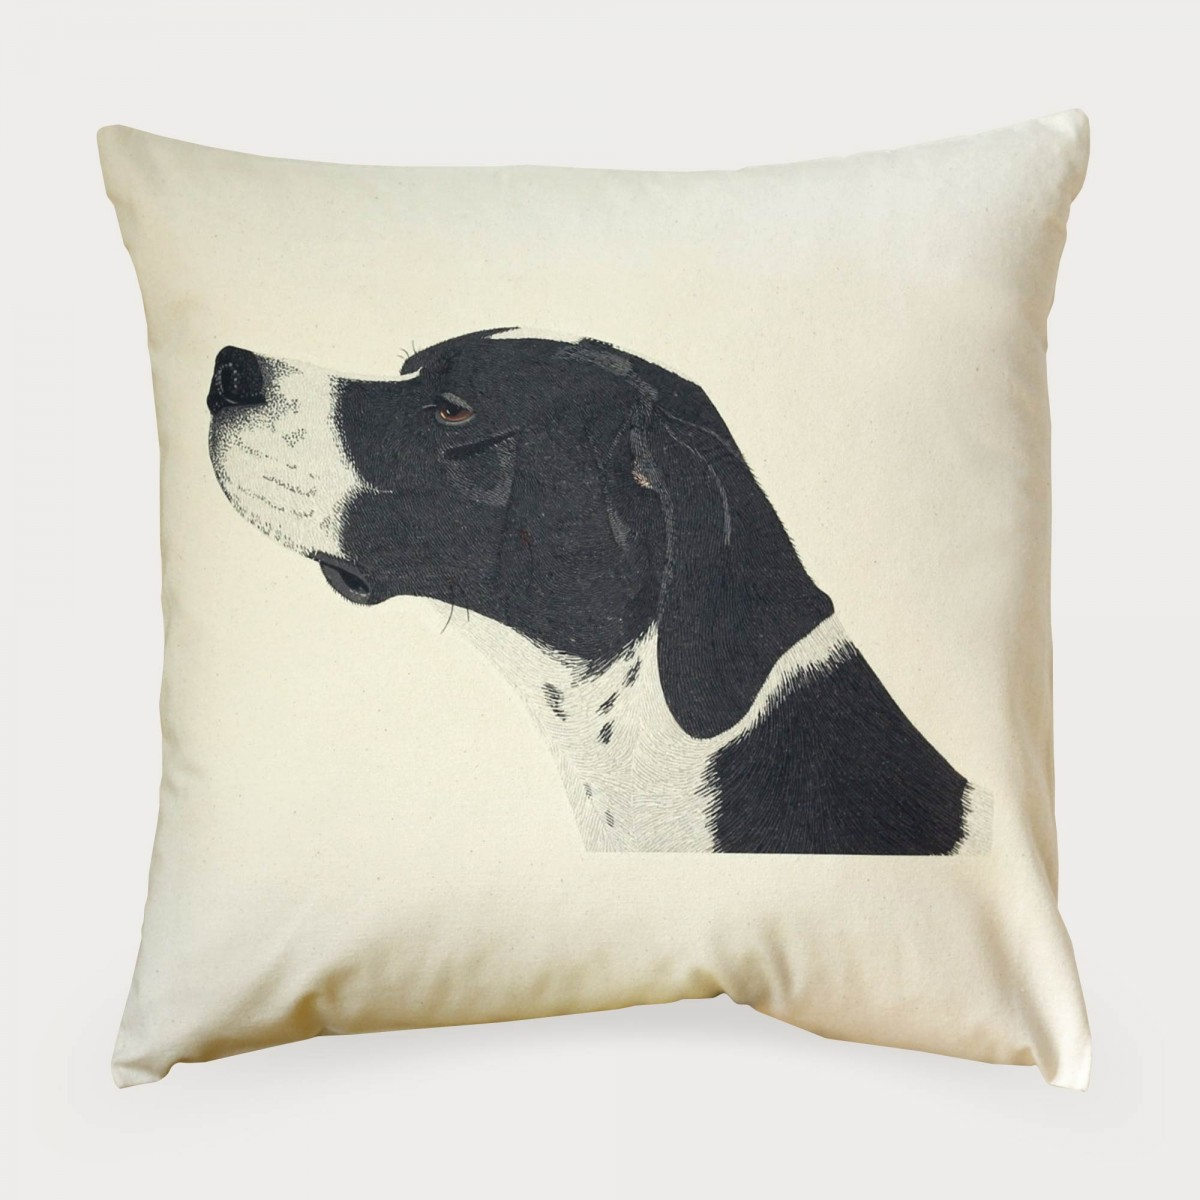 English Pointer Dog Cushion Cover